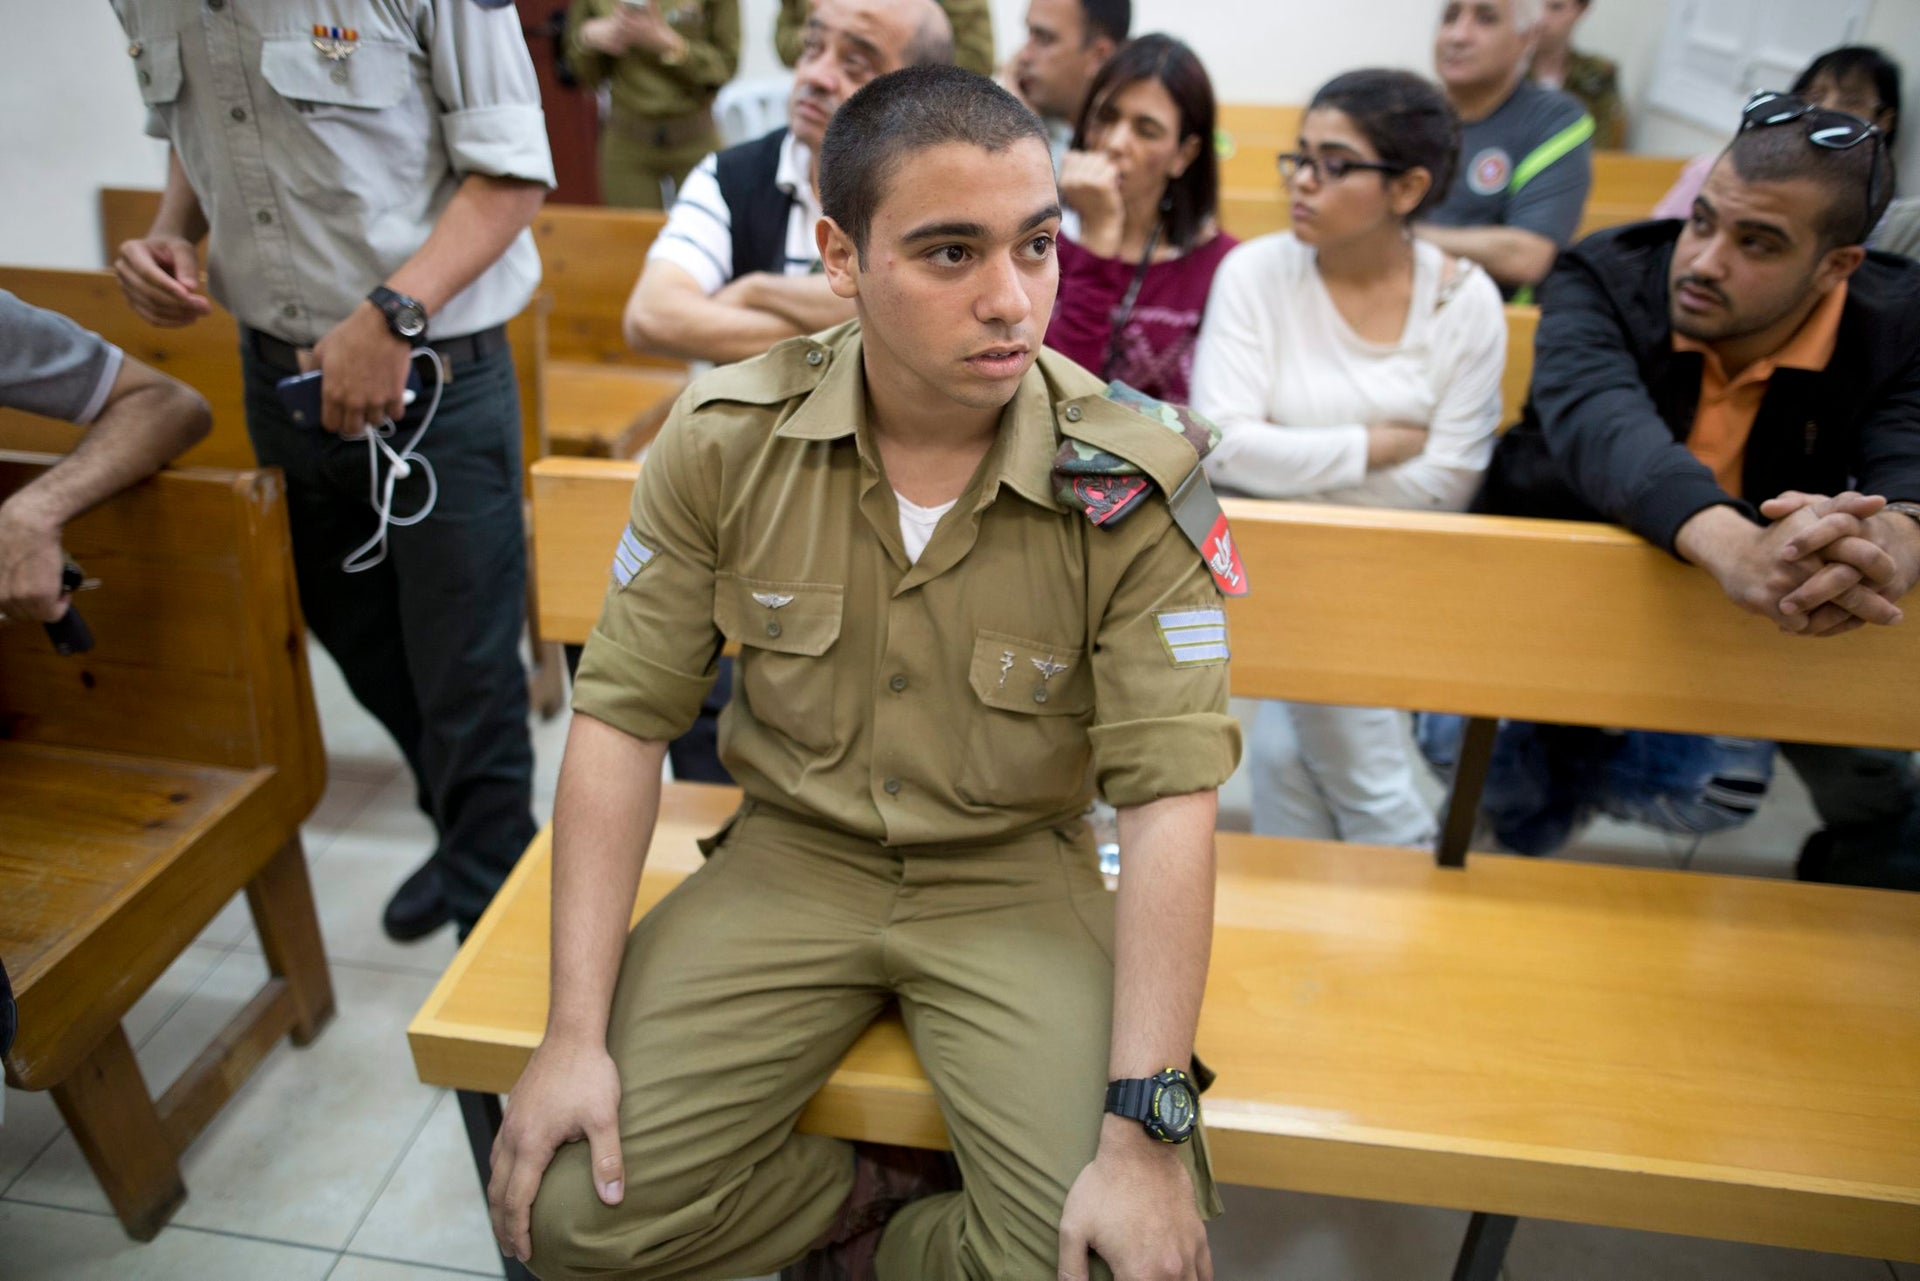 IDF soldier Elor Azaria, charged with manslaughter in shooting death of a Palestinian in March in Hebron, in the military court in Jaffa, in April, 2016.